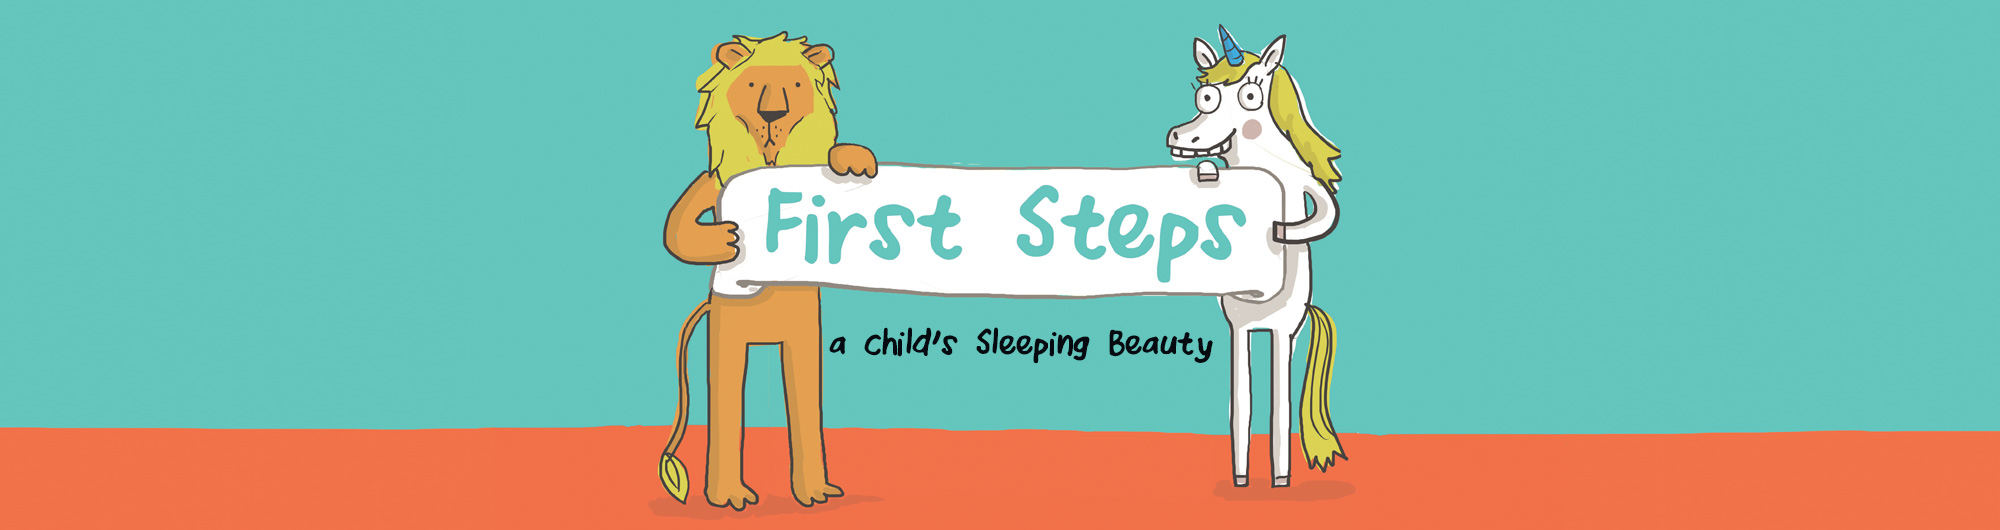 Hero-First-Steps-Sleeping-Beauty